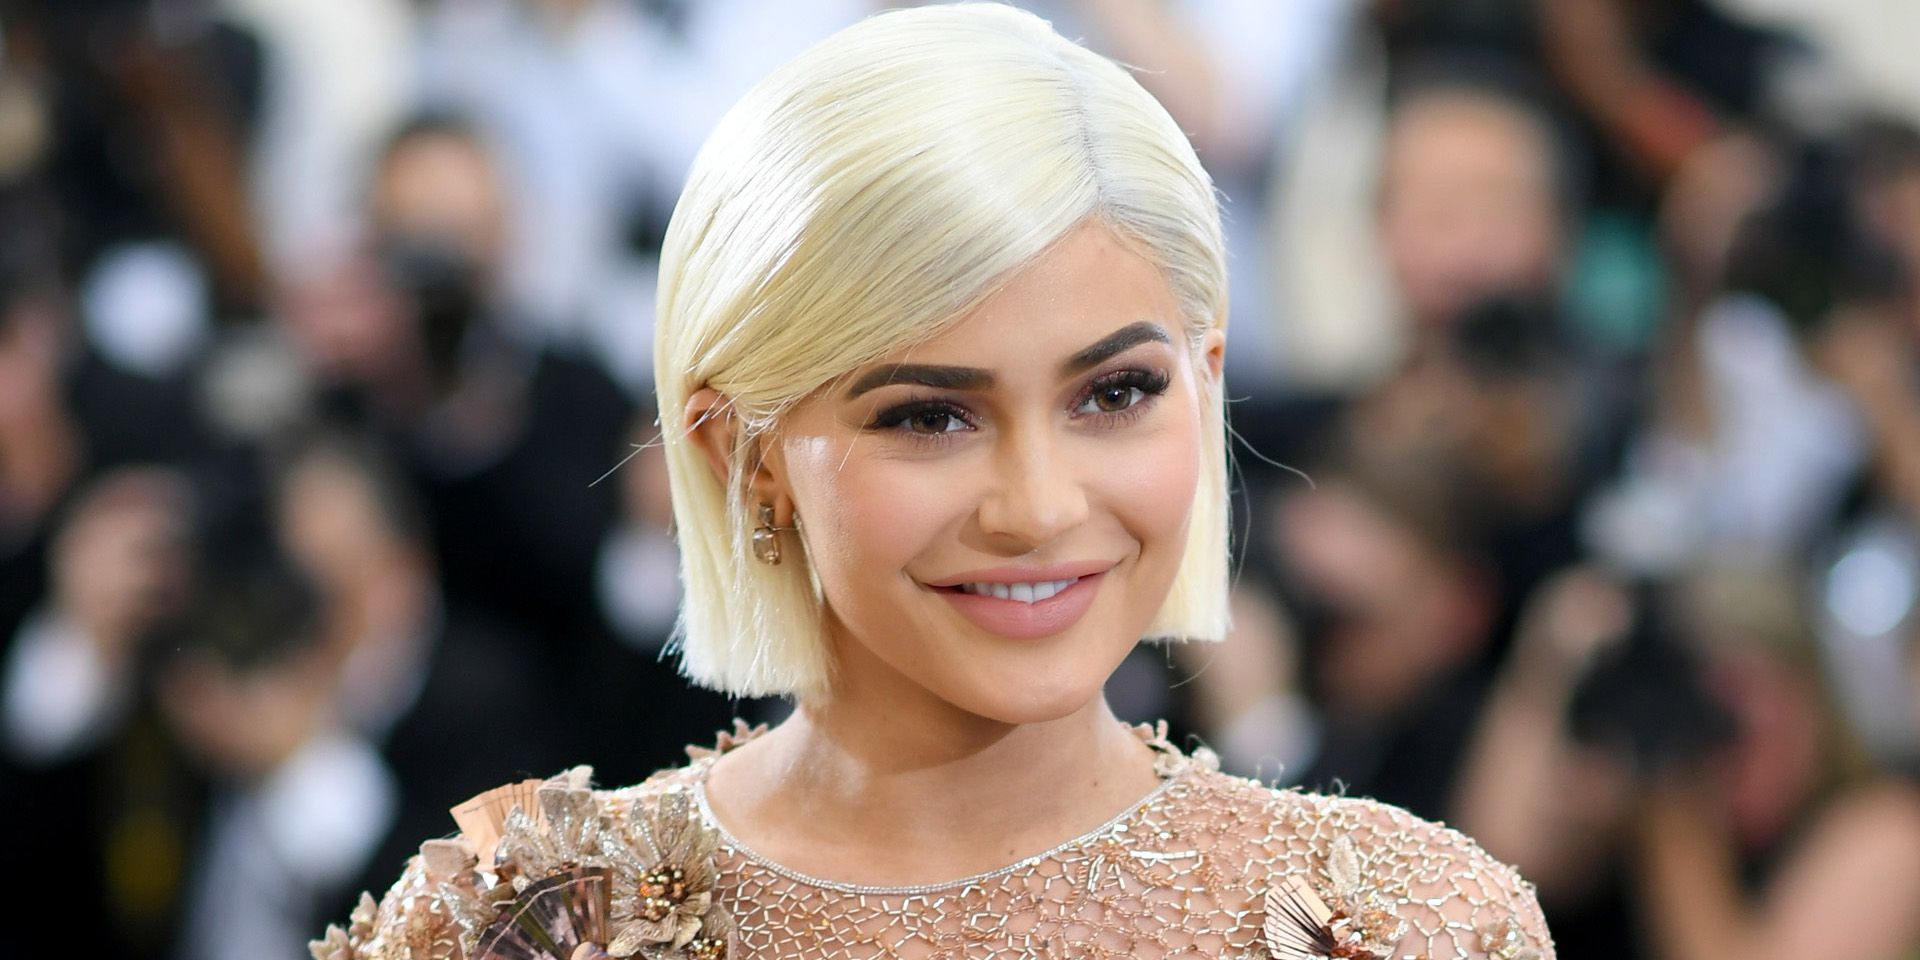 Kylie Jenner Debuts A Totally New Look At Coachella